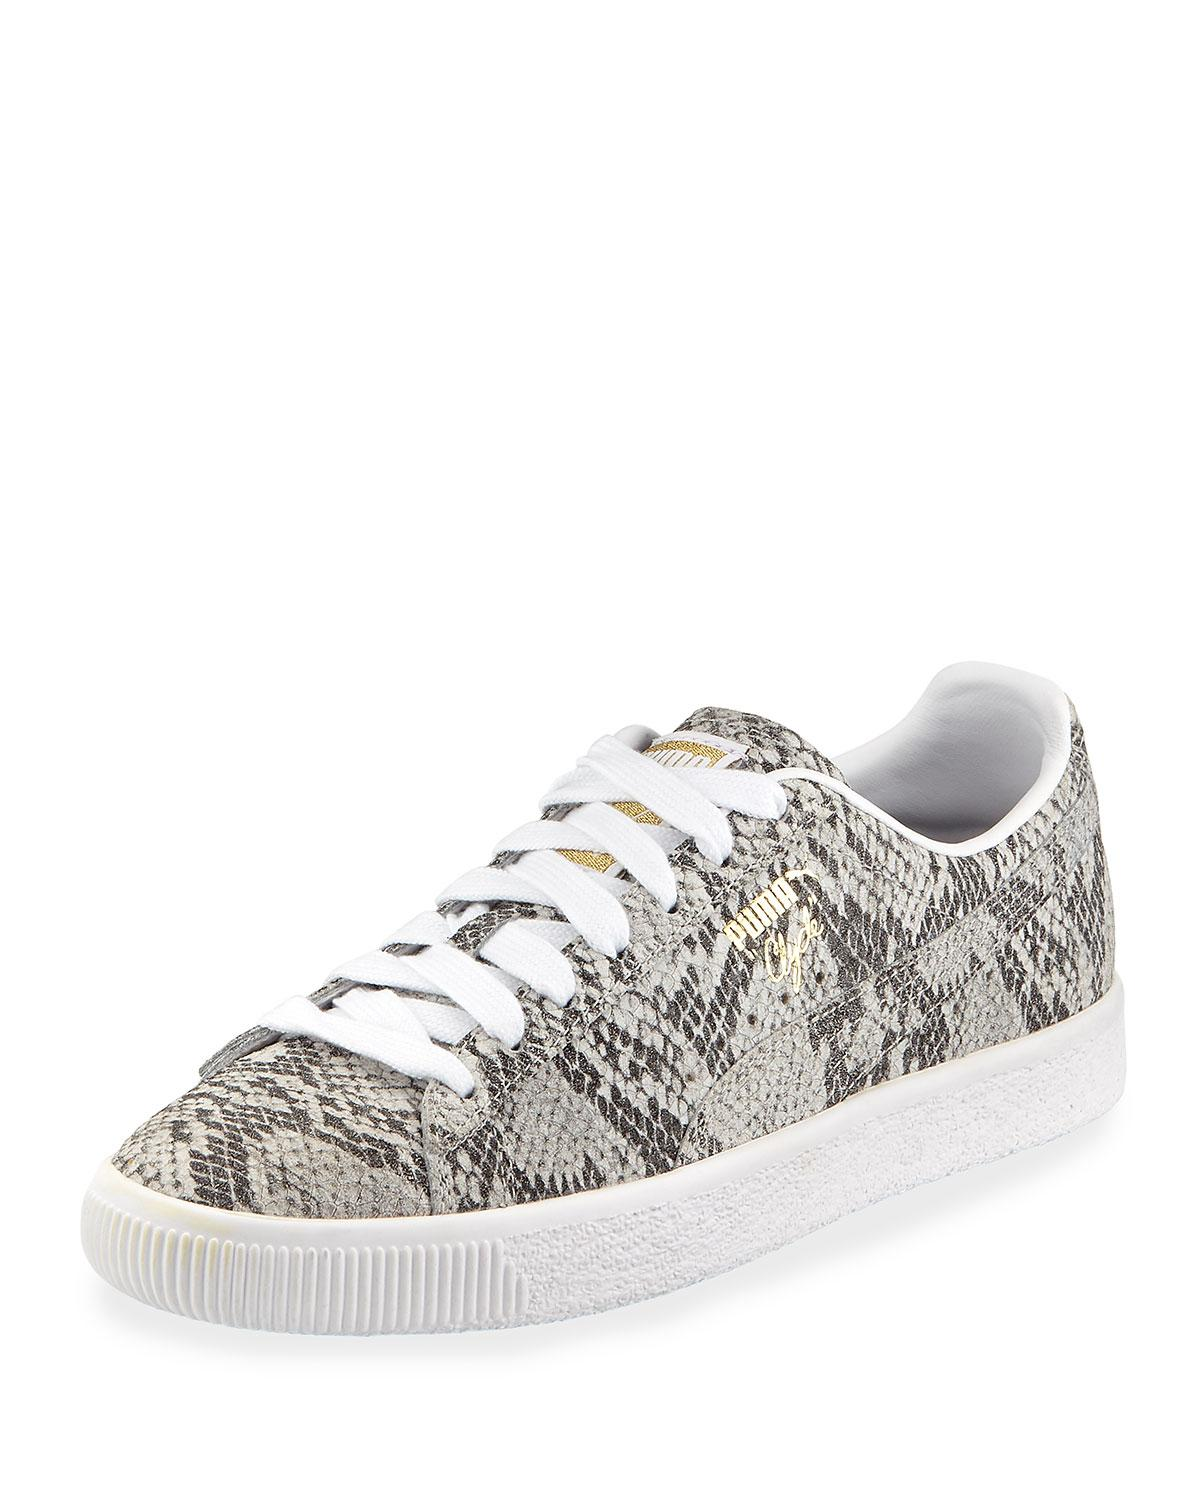 8b253c4e7d57 PUMA - White Clyde Snake-print Leather Lace-up Sneakers - Lyst. View  fullscreen